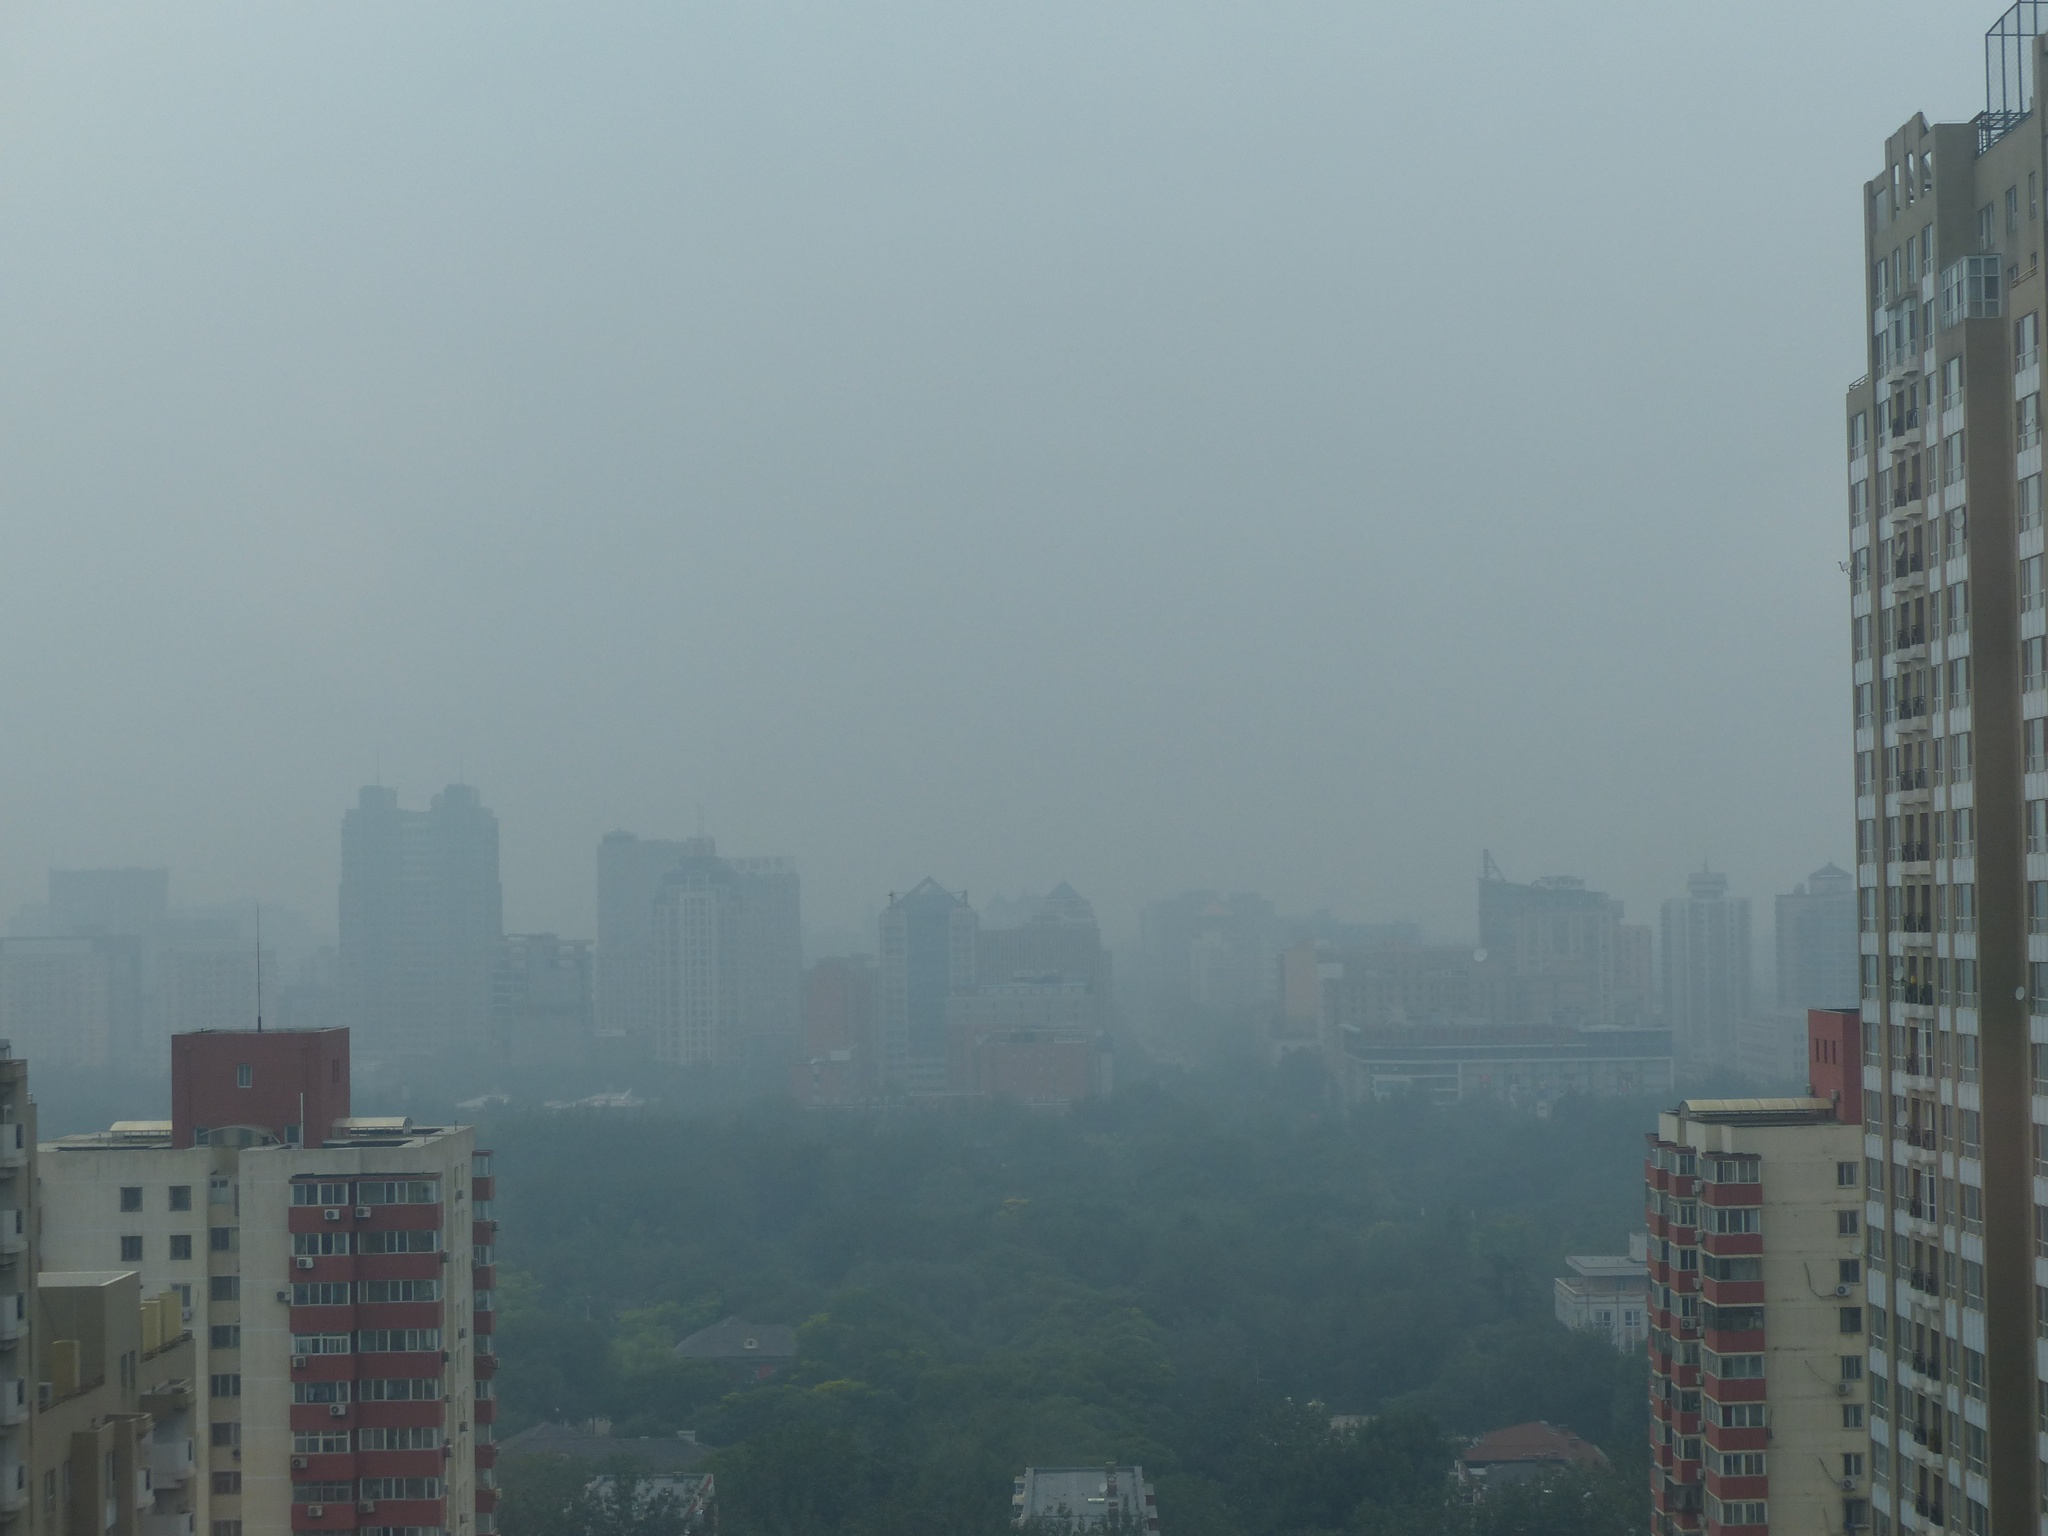 Beijing view with pollution